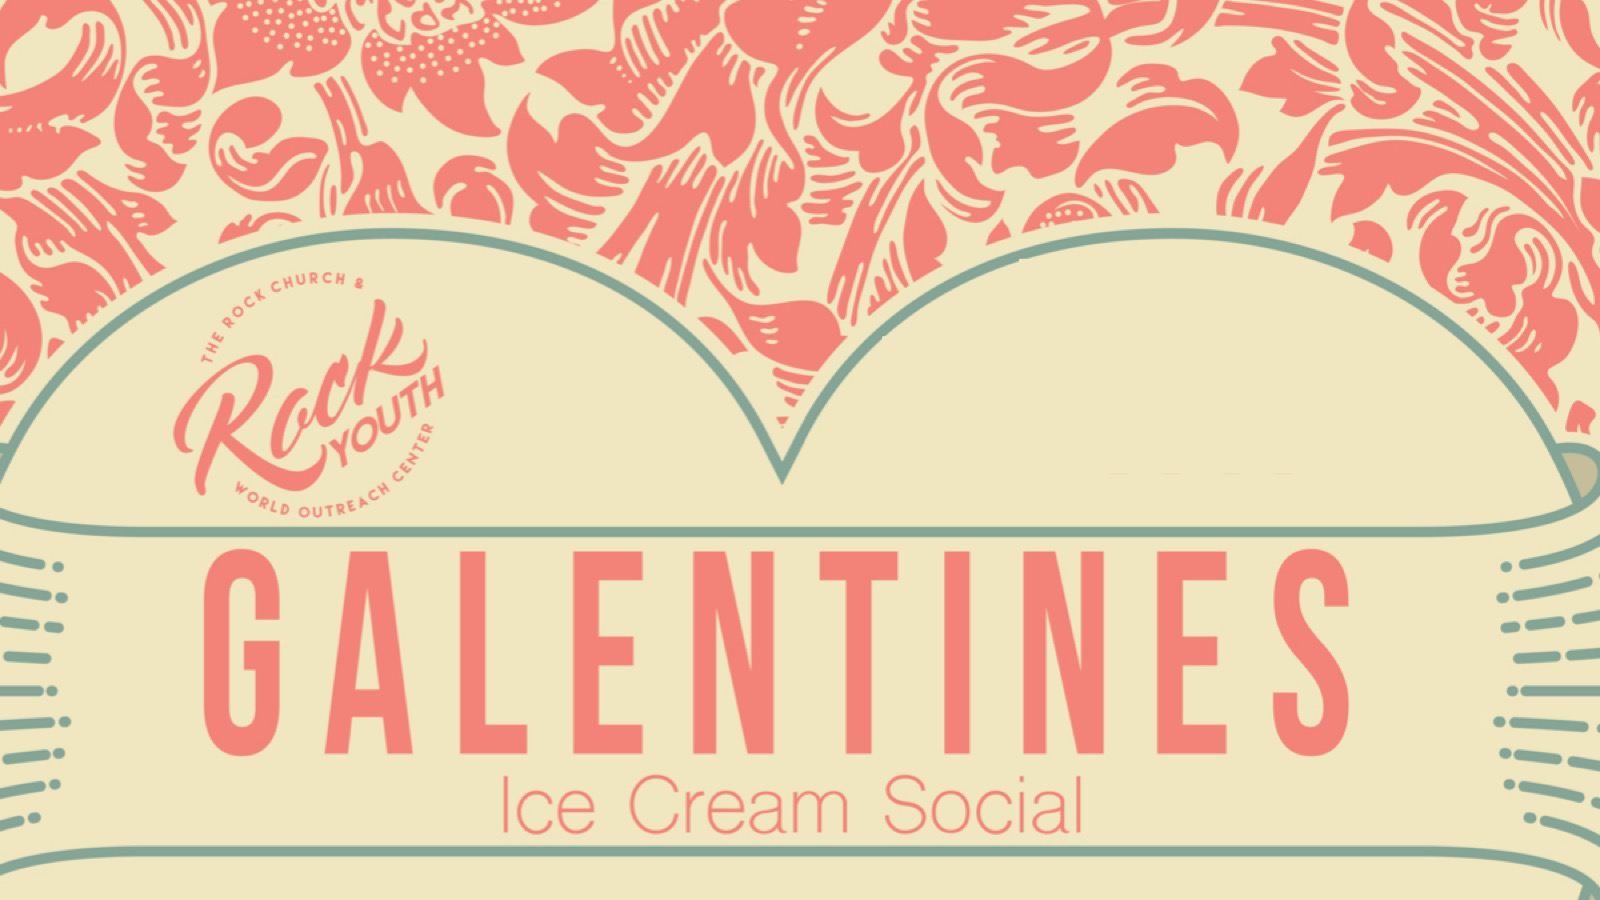 The Rock Youth Presents Galentines